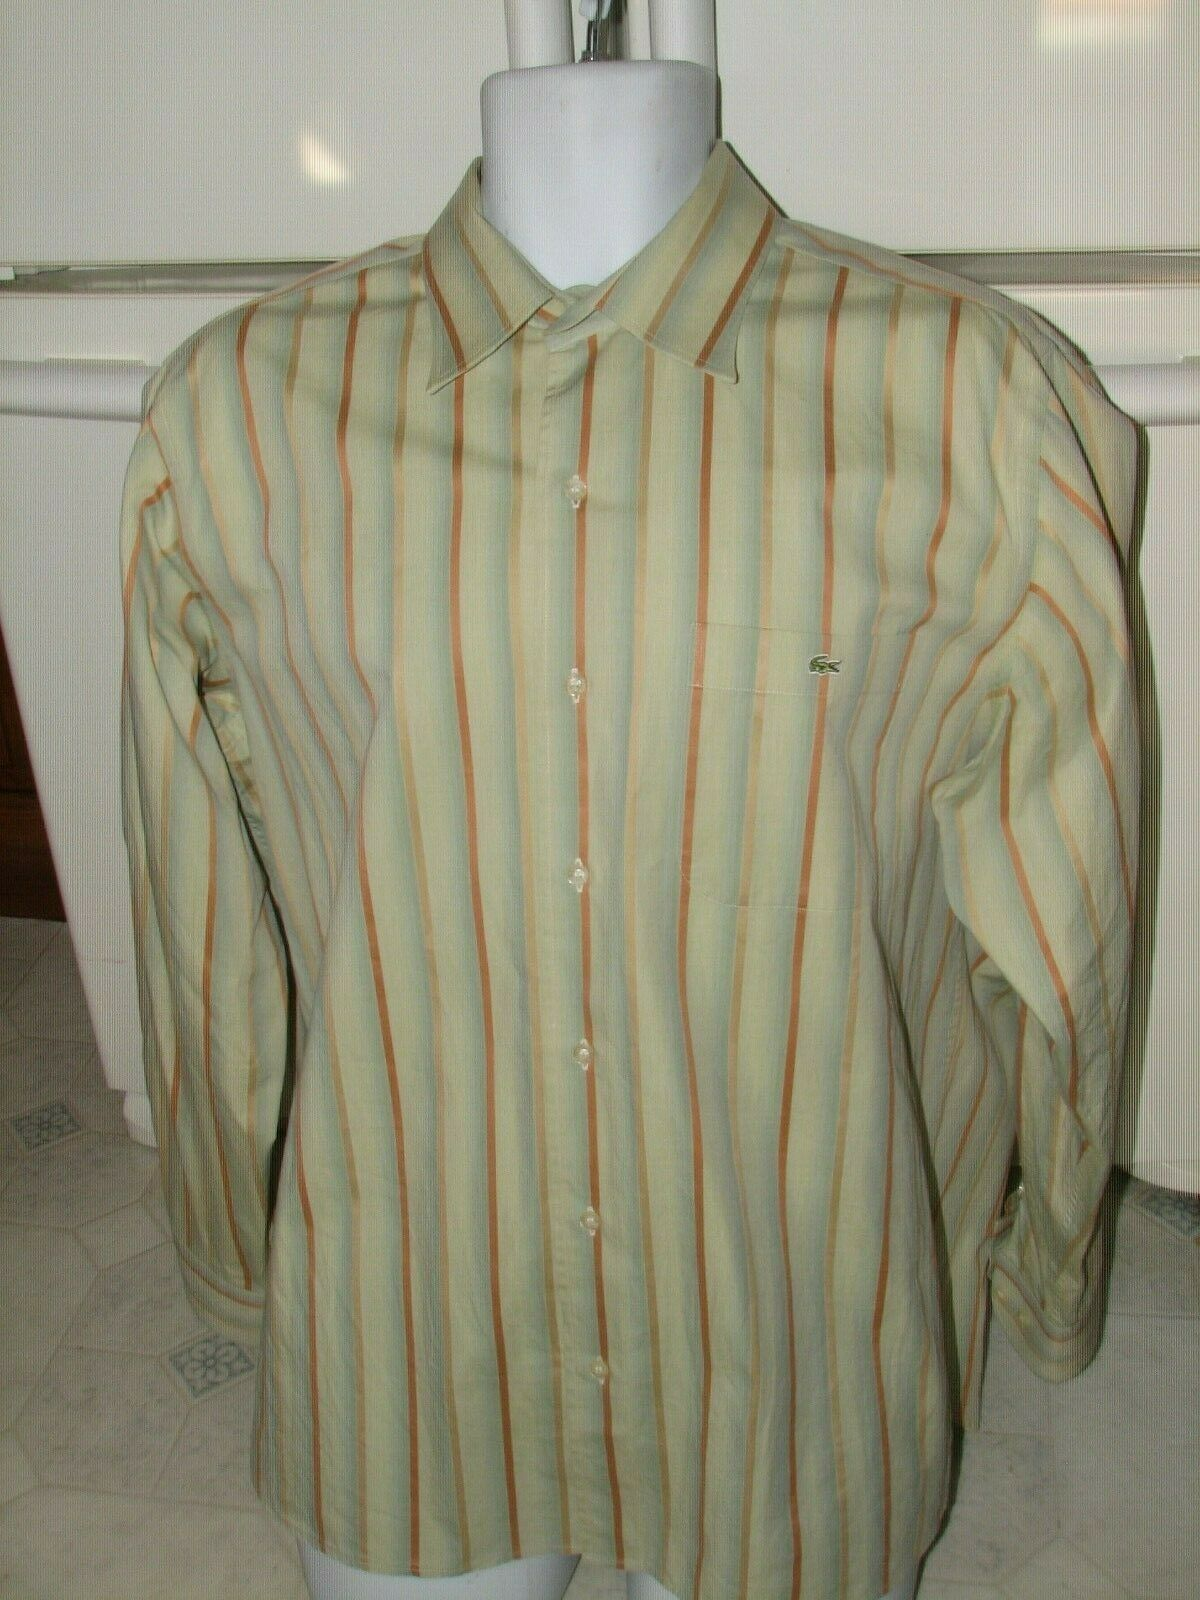 Lacoste Alligator casual dress shirt size 43 Men's XL   Perfect condition